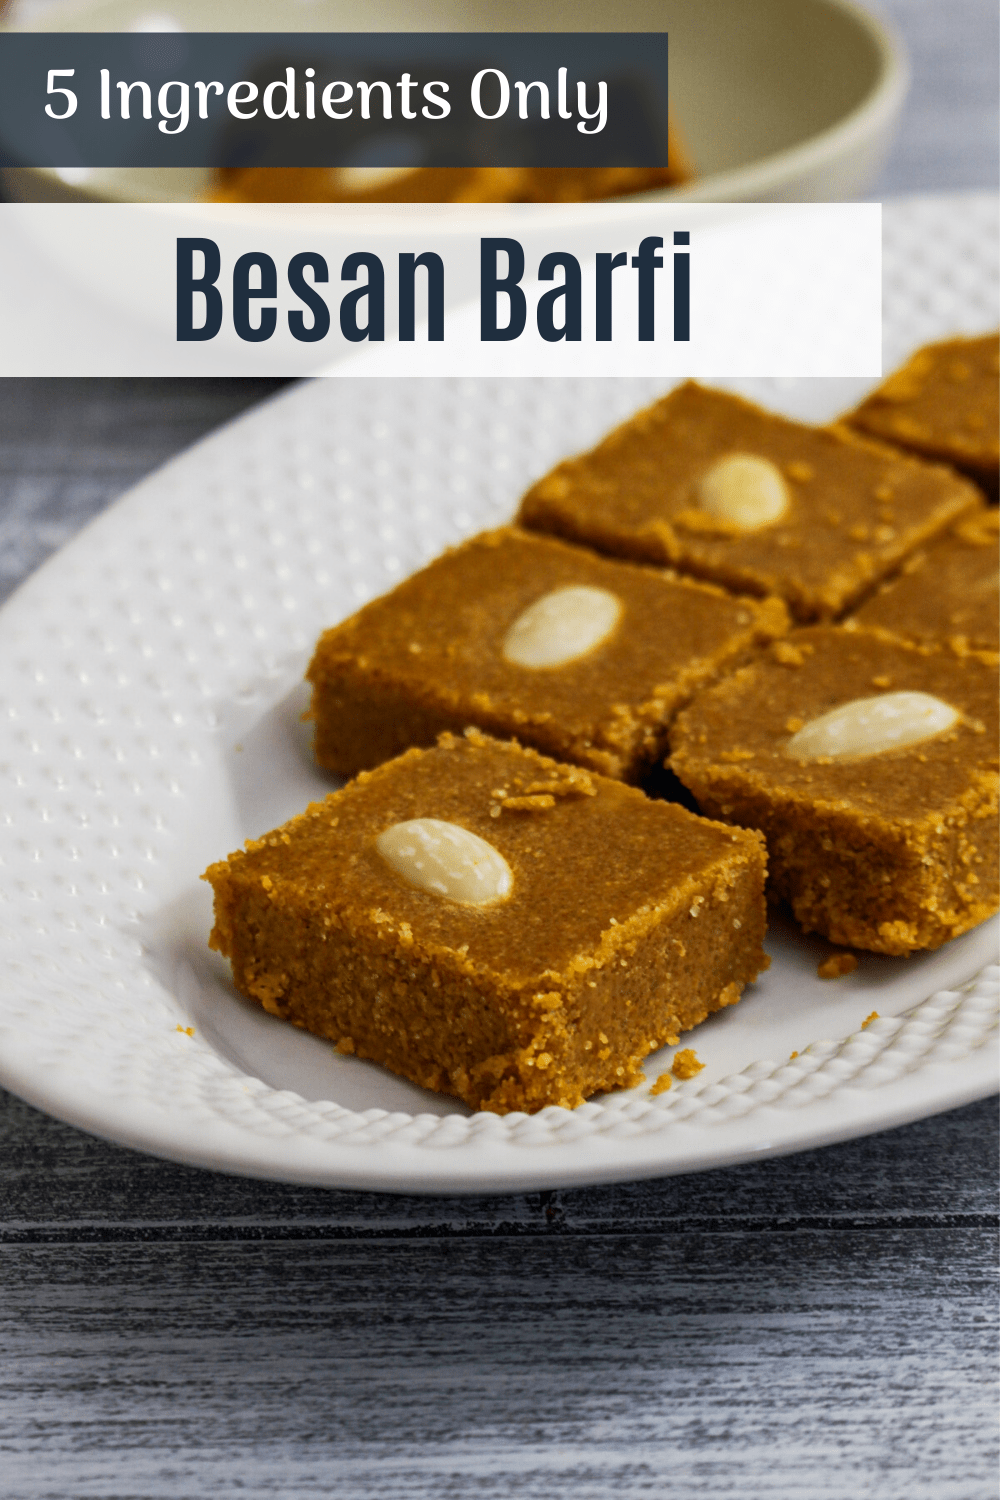 besan barfi pieces in a plate with text on top.